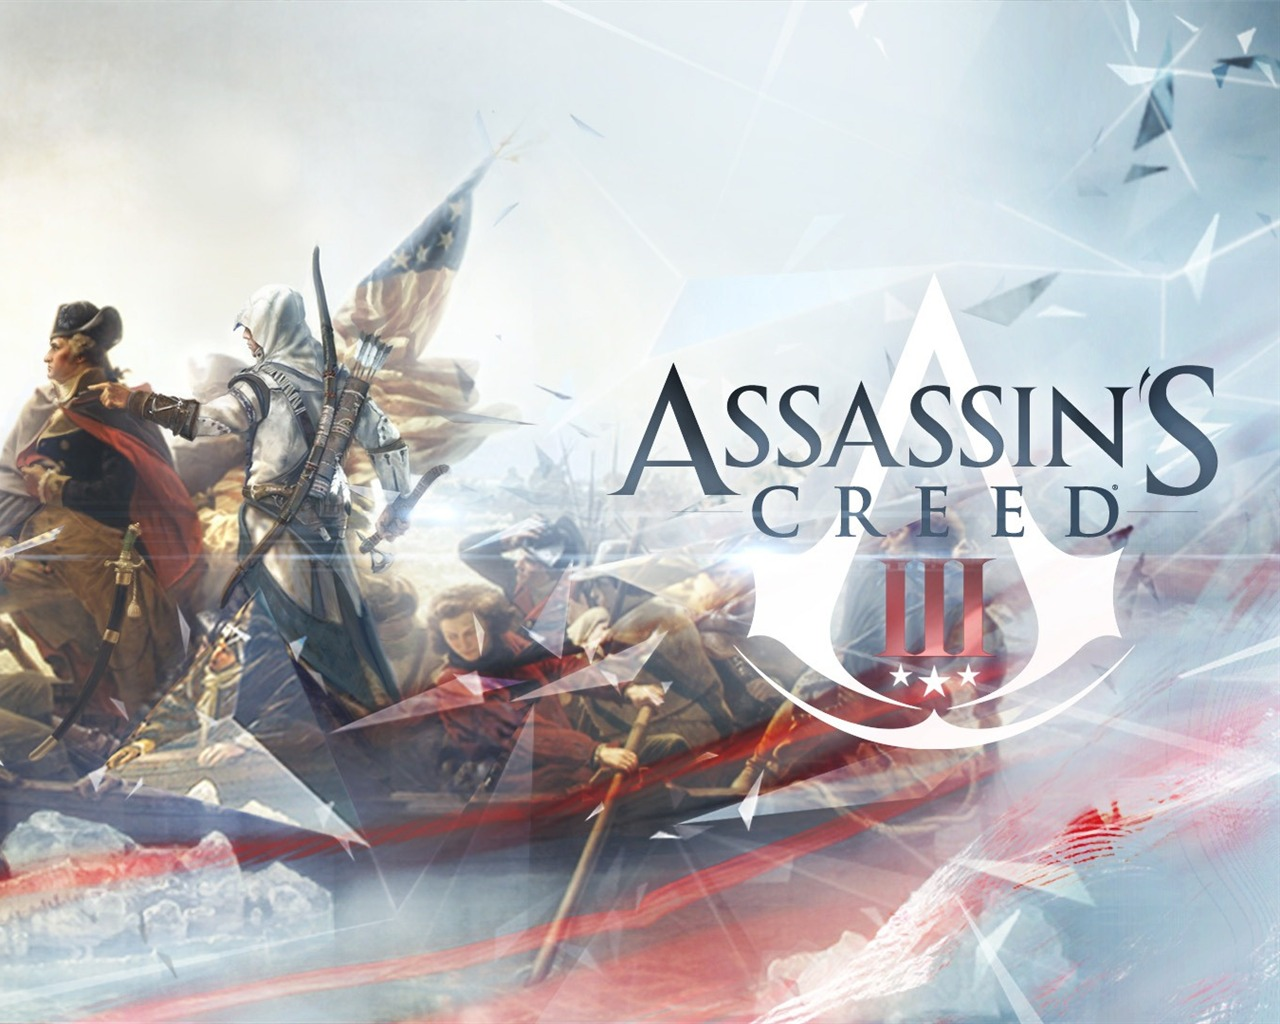 Assassins Creed 3 Game HD Wallpaper 03 Current Size 1280 x 1024 1280x1024